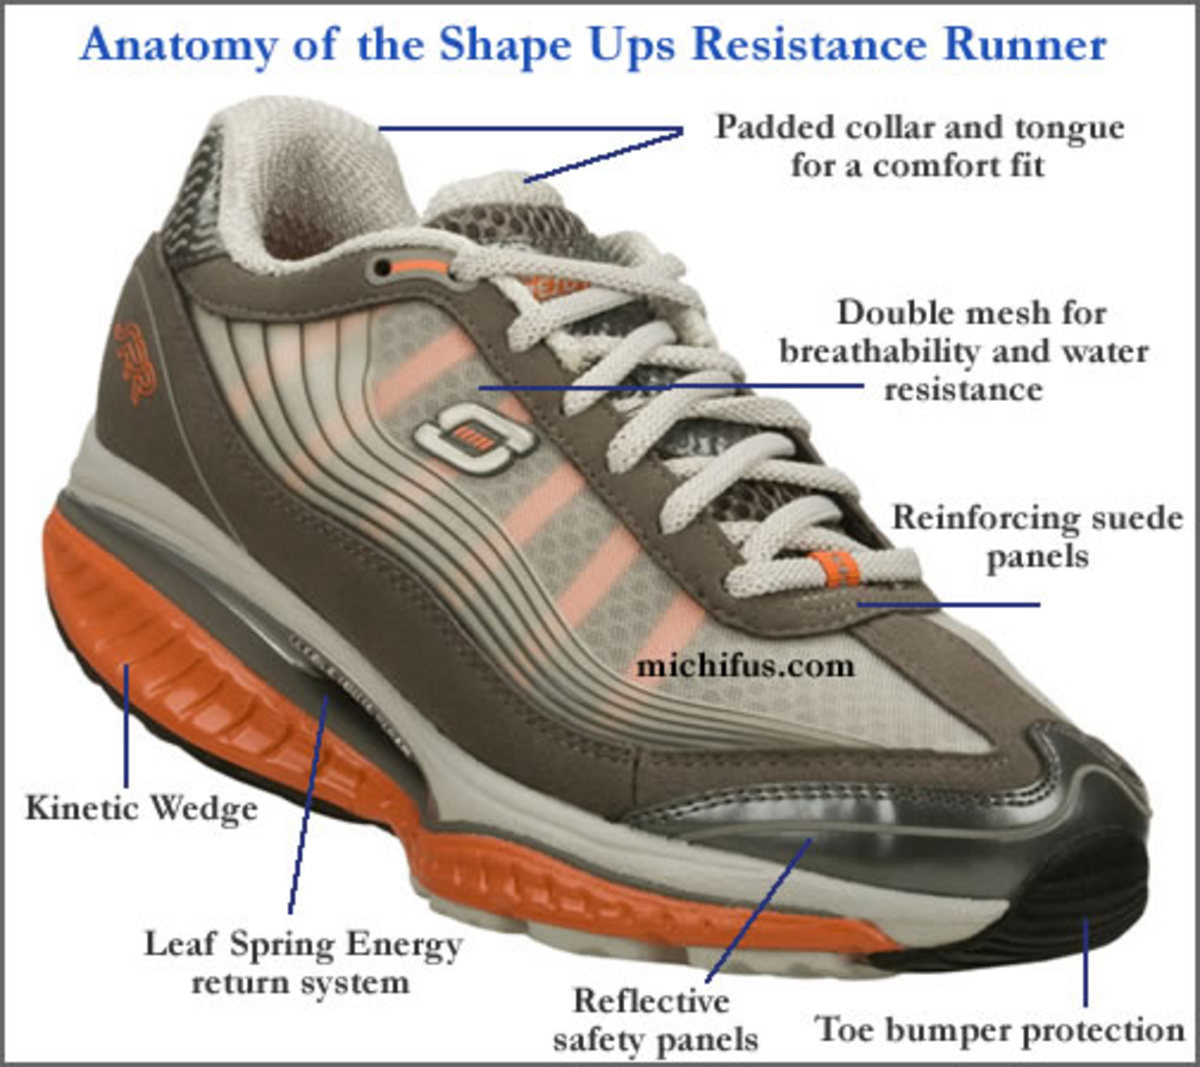 A Runner Shapes Up A Tired Staircase: The Skechers Shape Ups SRR Resistance Runner